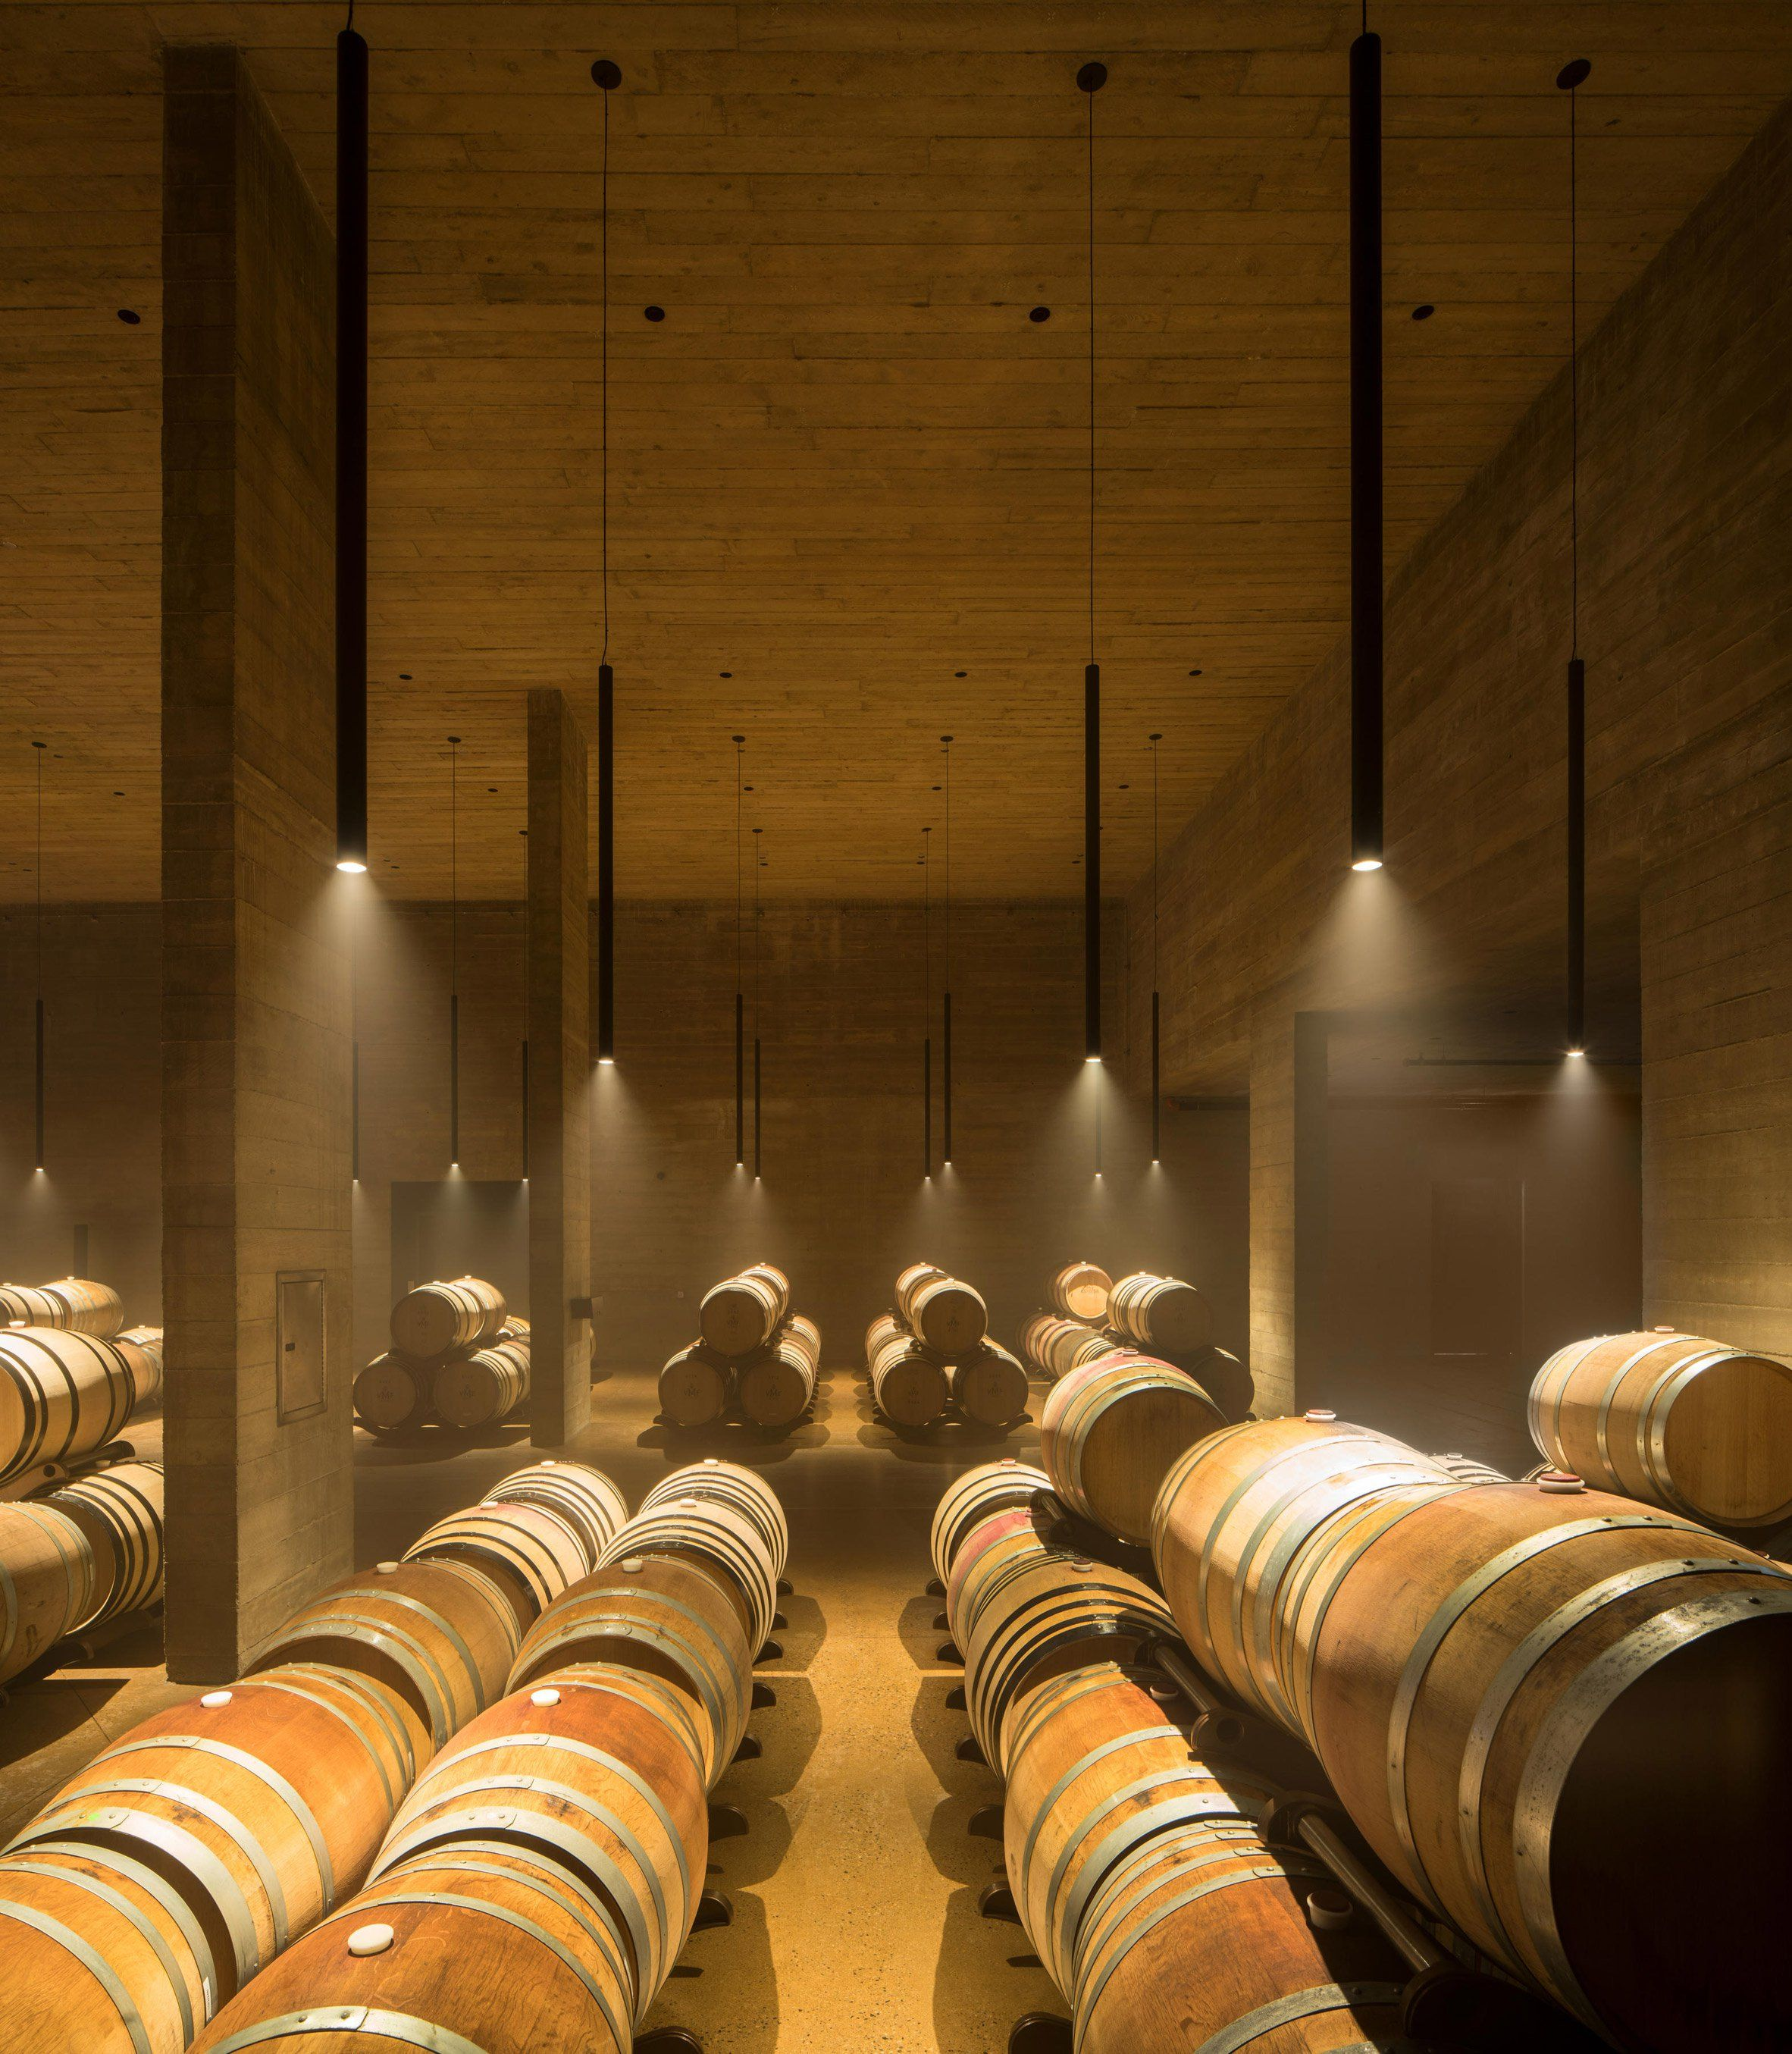 Martin S Lane Winery By Olson Kundig Architects Wineries